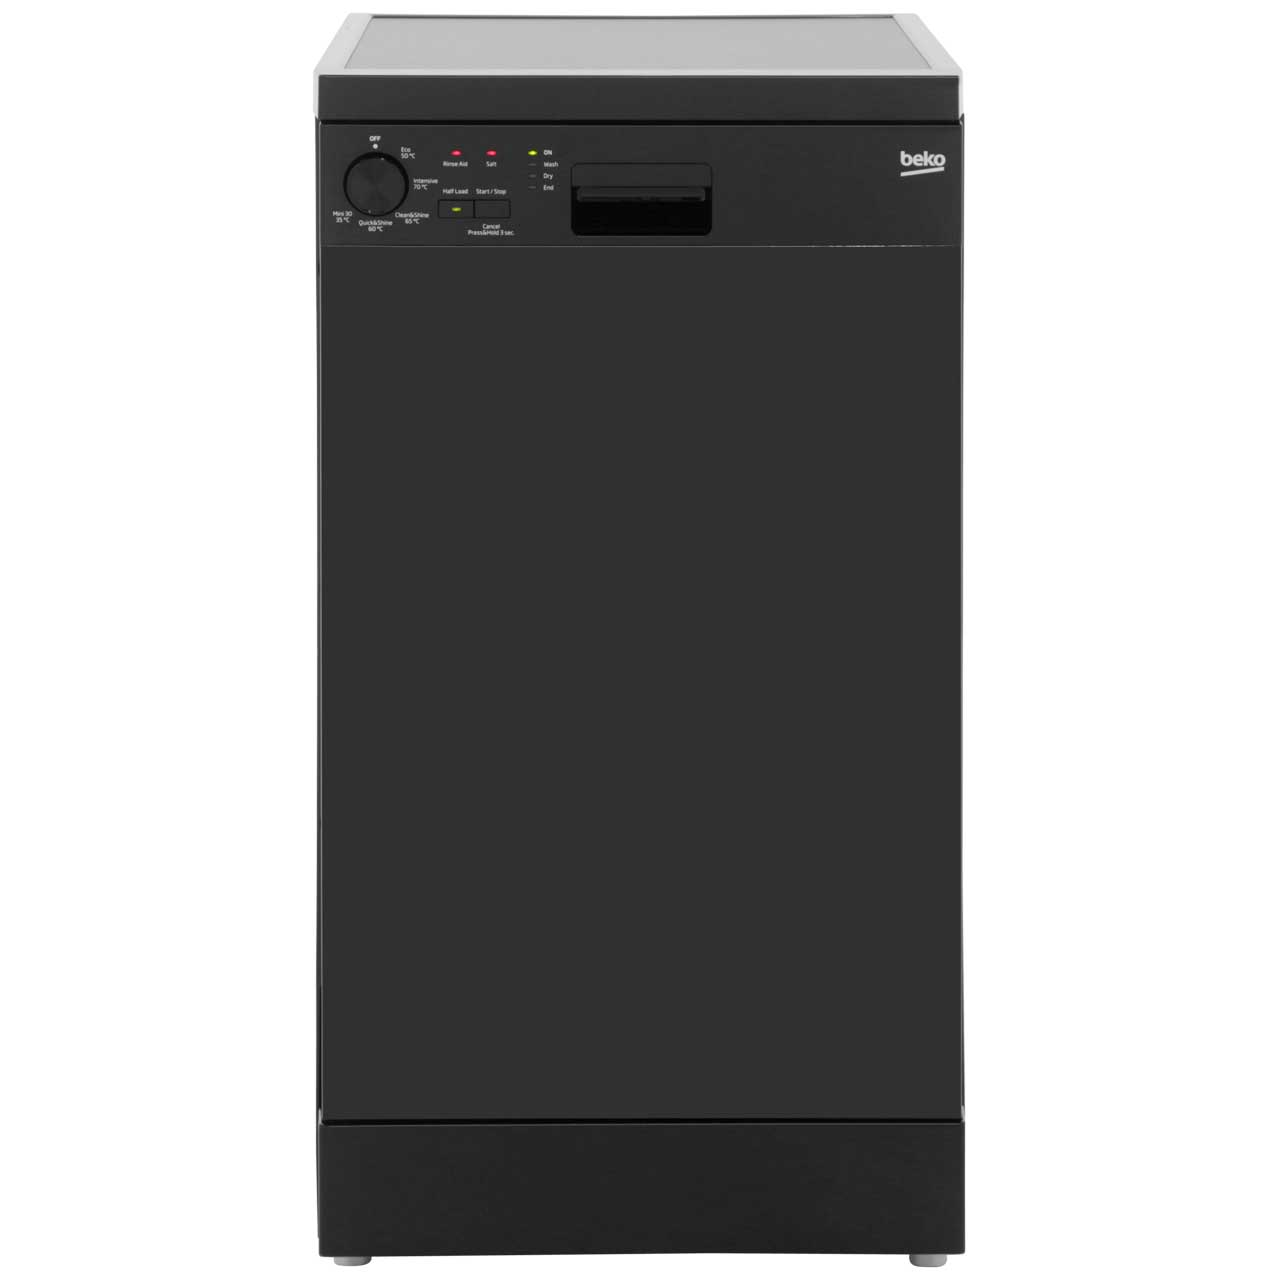 Beko DFS05010B Free Standing Slimline Dishwasher in Black